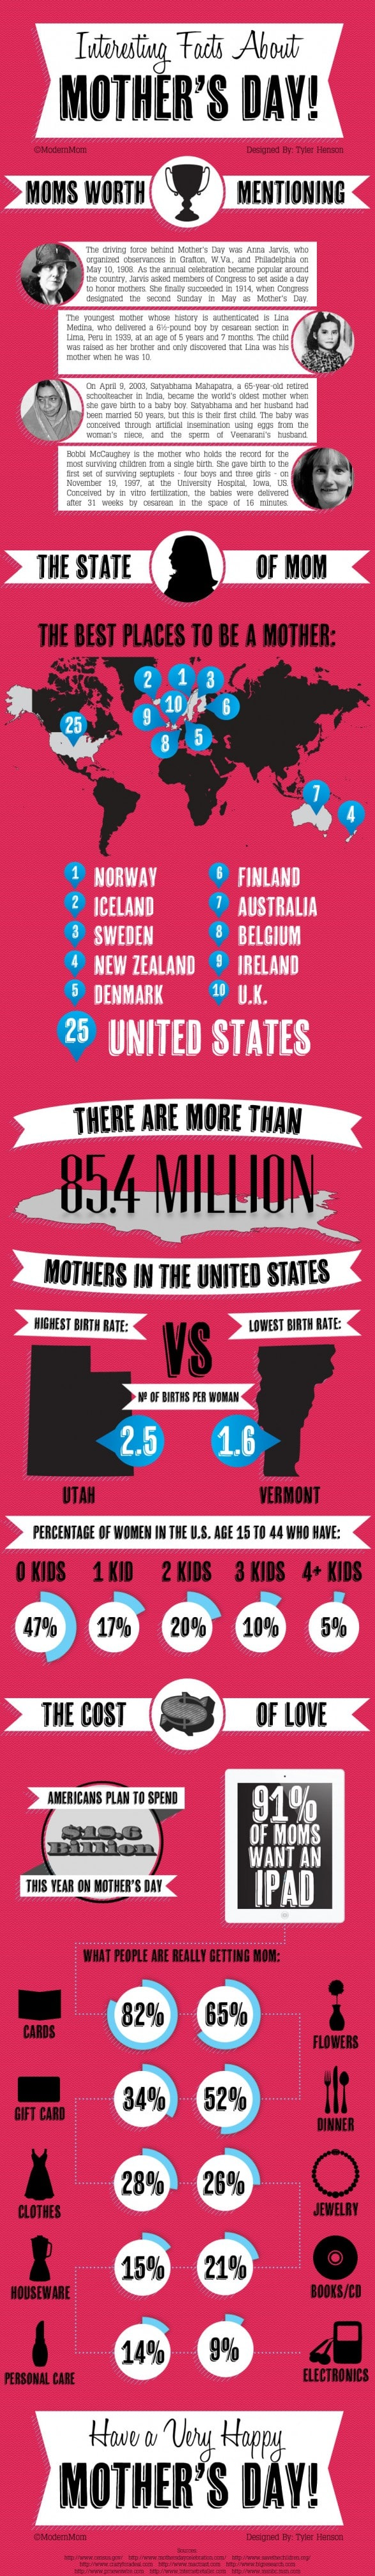 Interesting Facts About Mothers Day